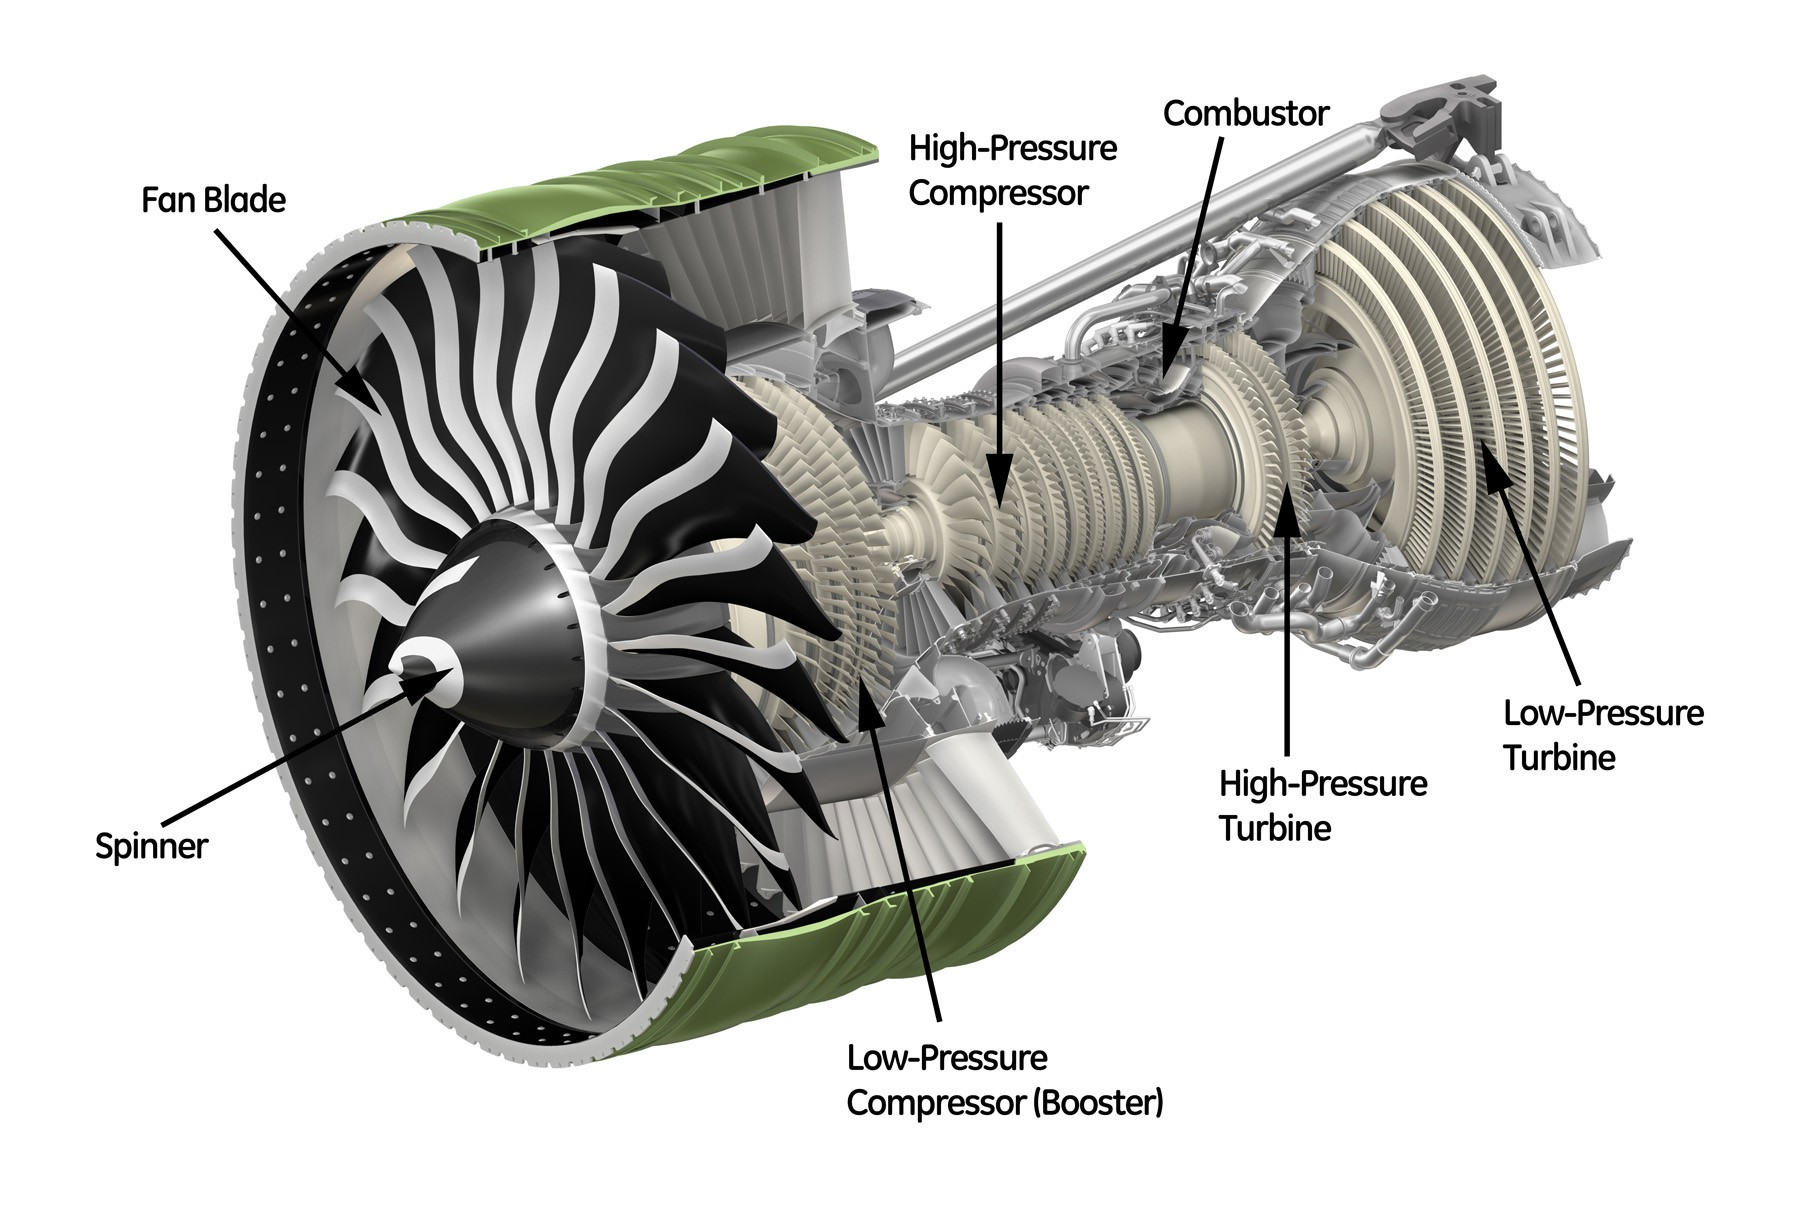 hight resolution of helicopter turbine engine diagram general electric turbine engines win s online of helicopter turbine engine diagram